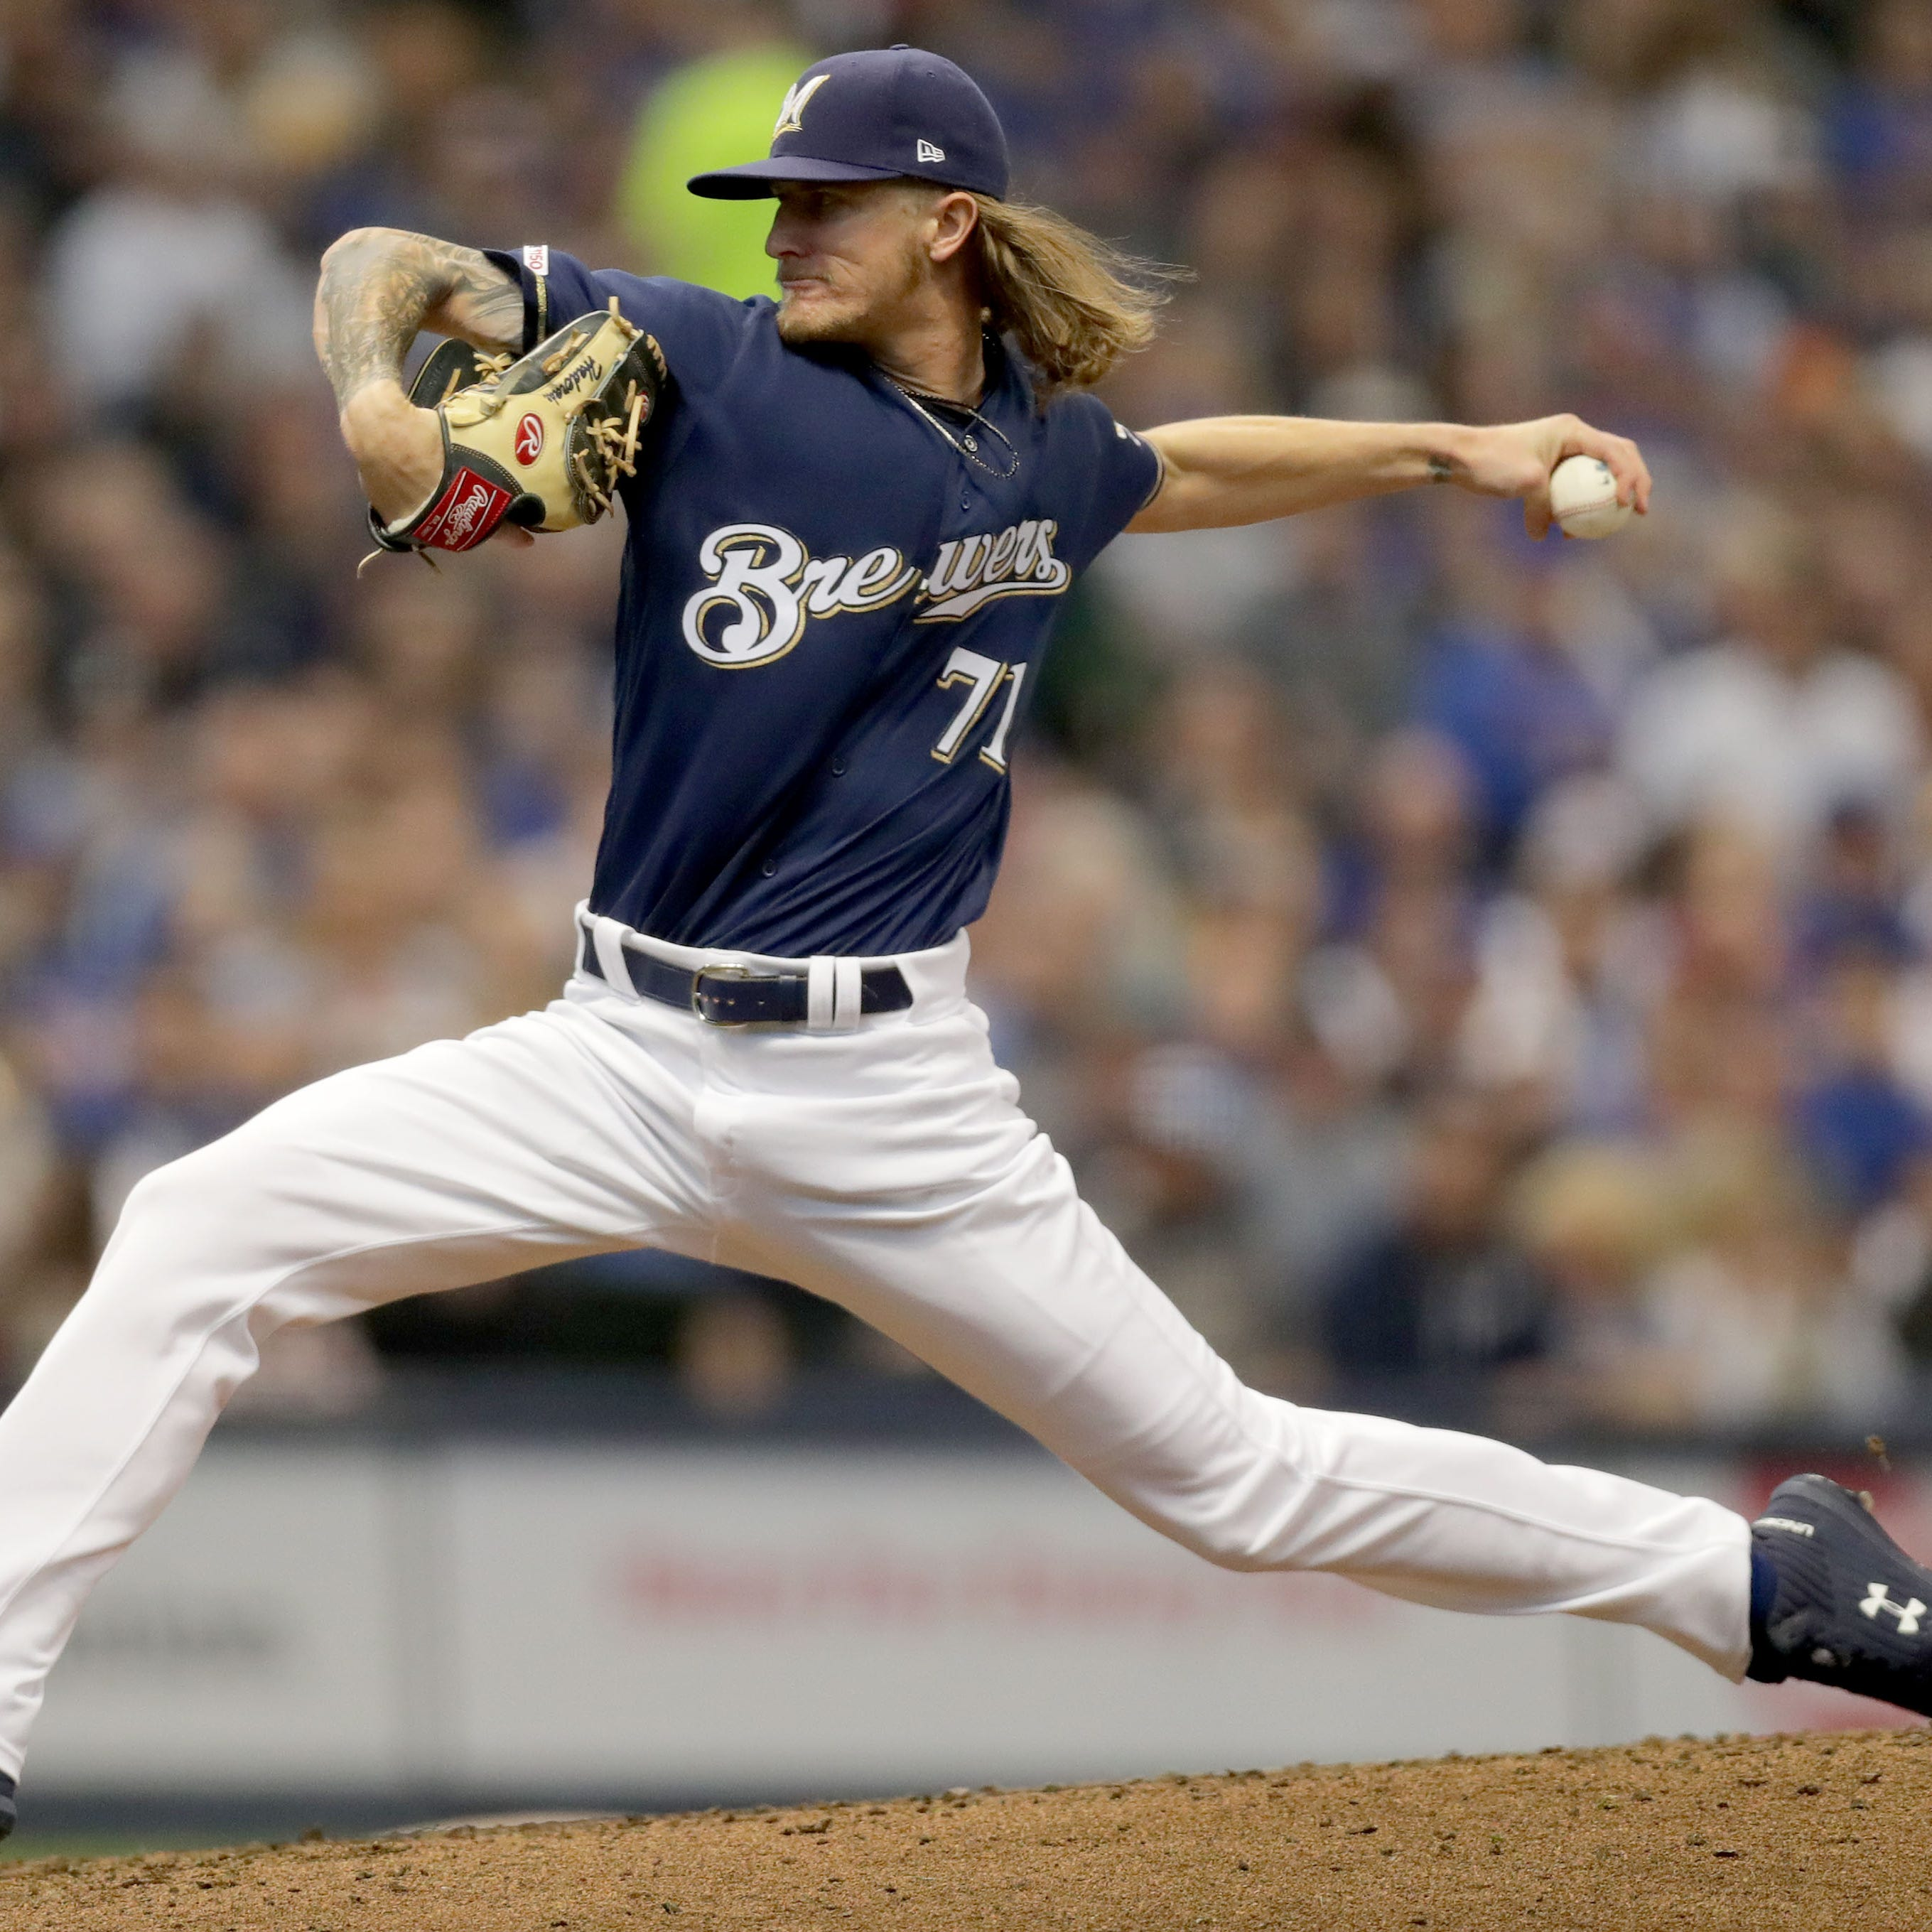 Brewers 4, Cubs 2: Josh Hader finished what Christian Yelich and Zach Davies started